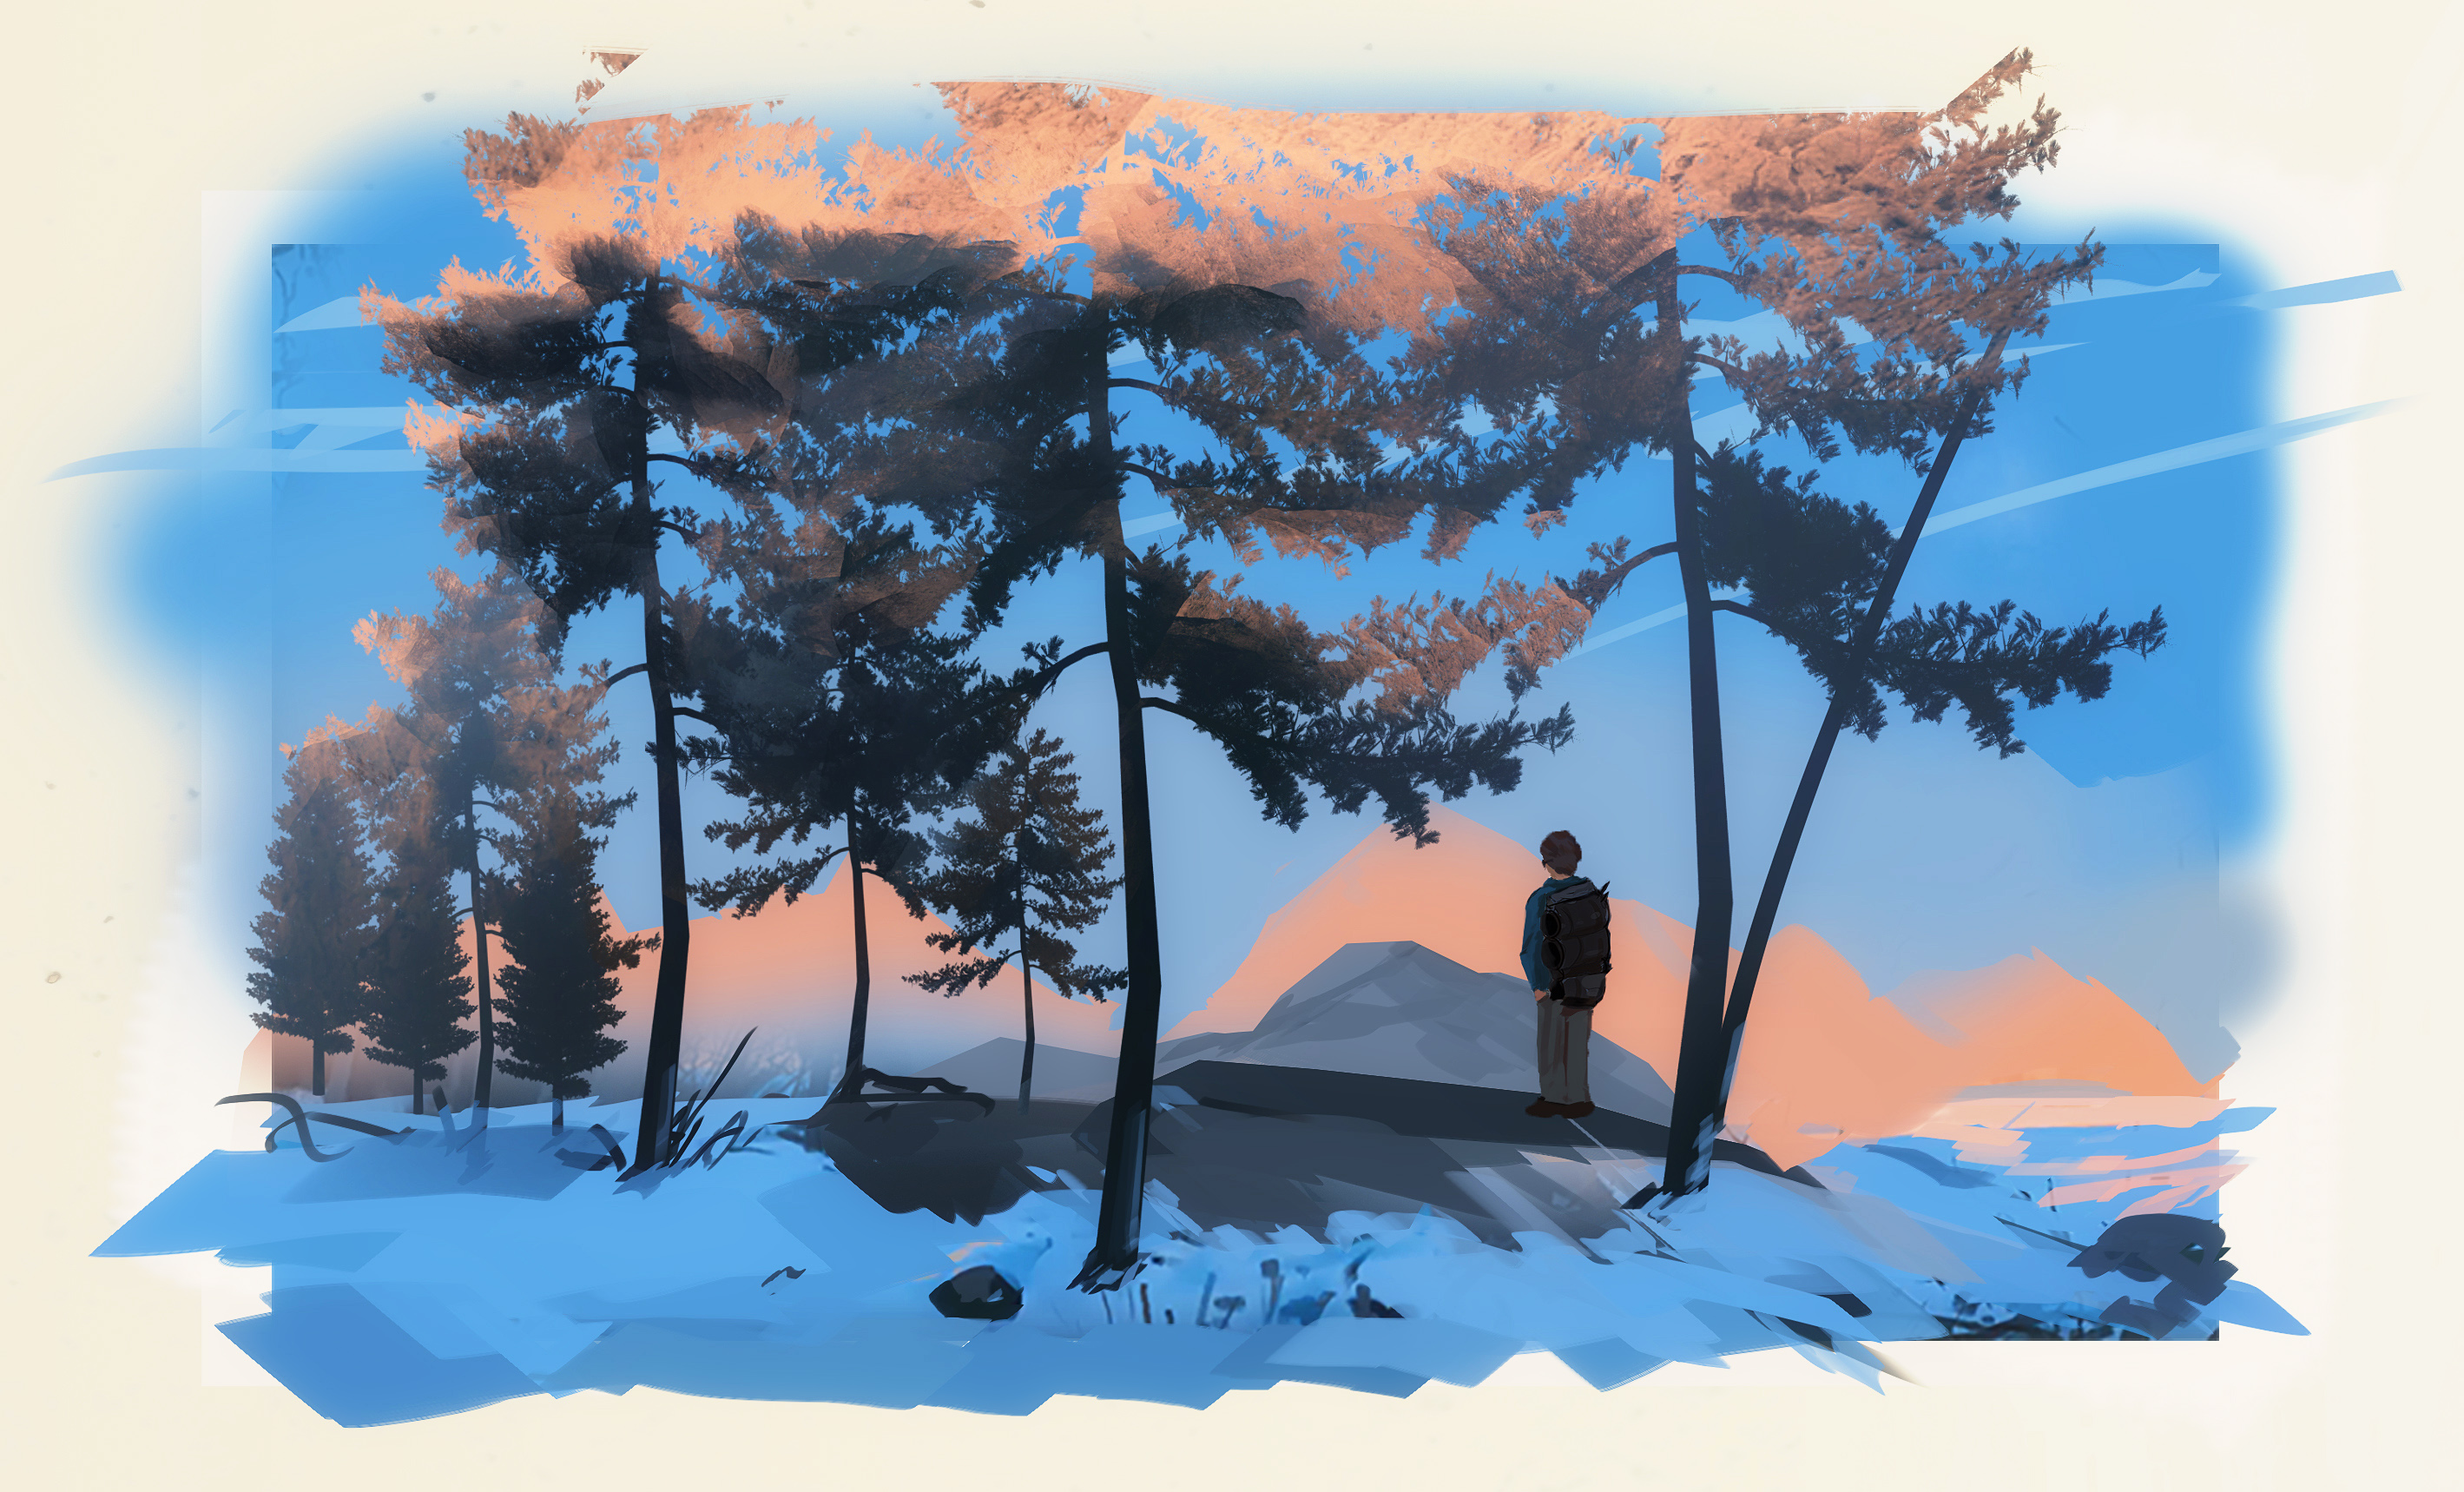 Sunset Illustration of an adventurer exploring to a snowy forest in Alaska